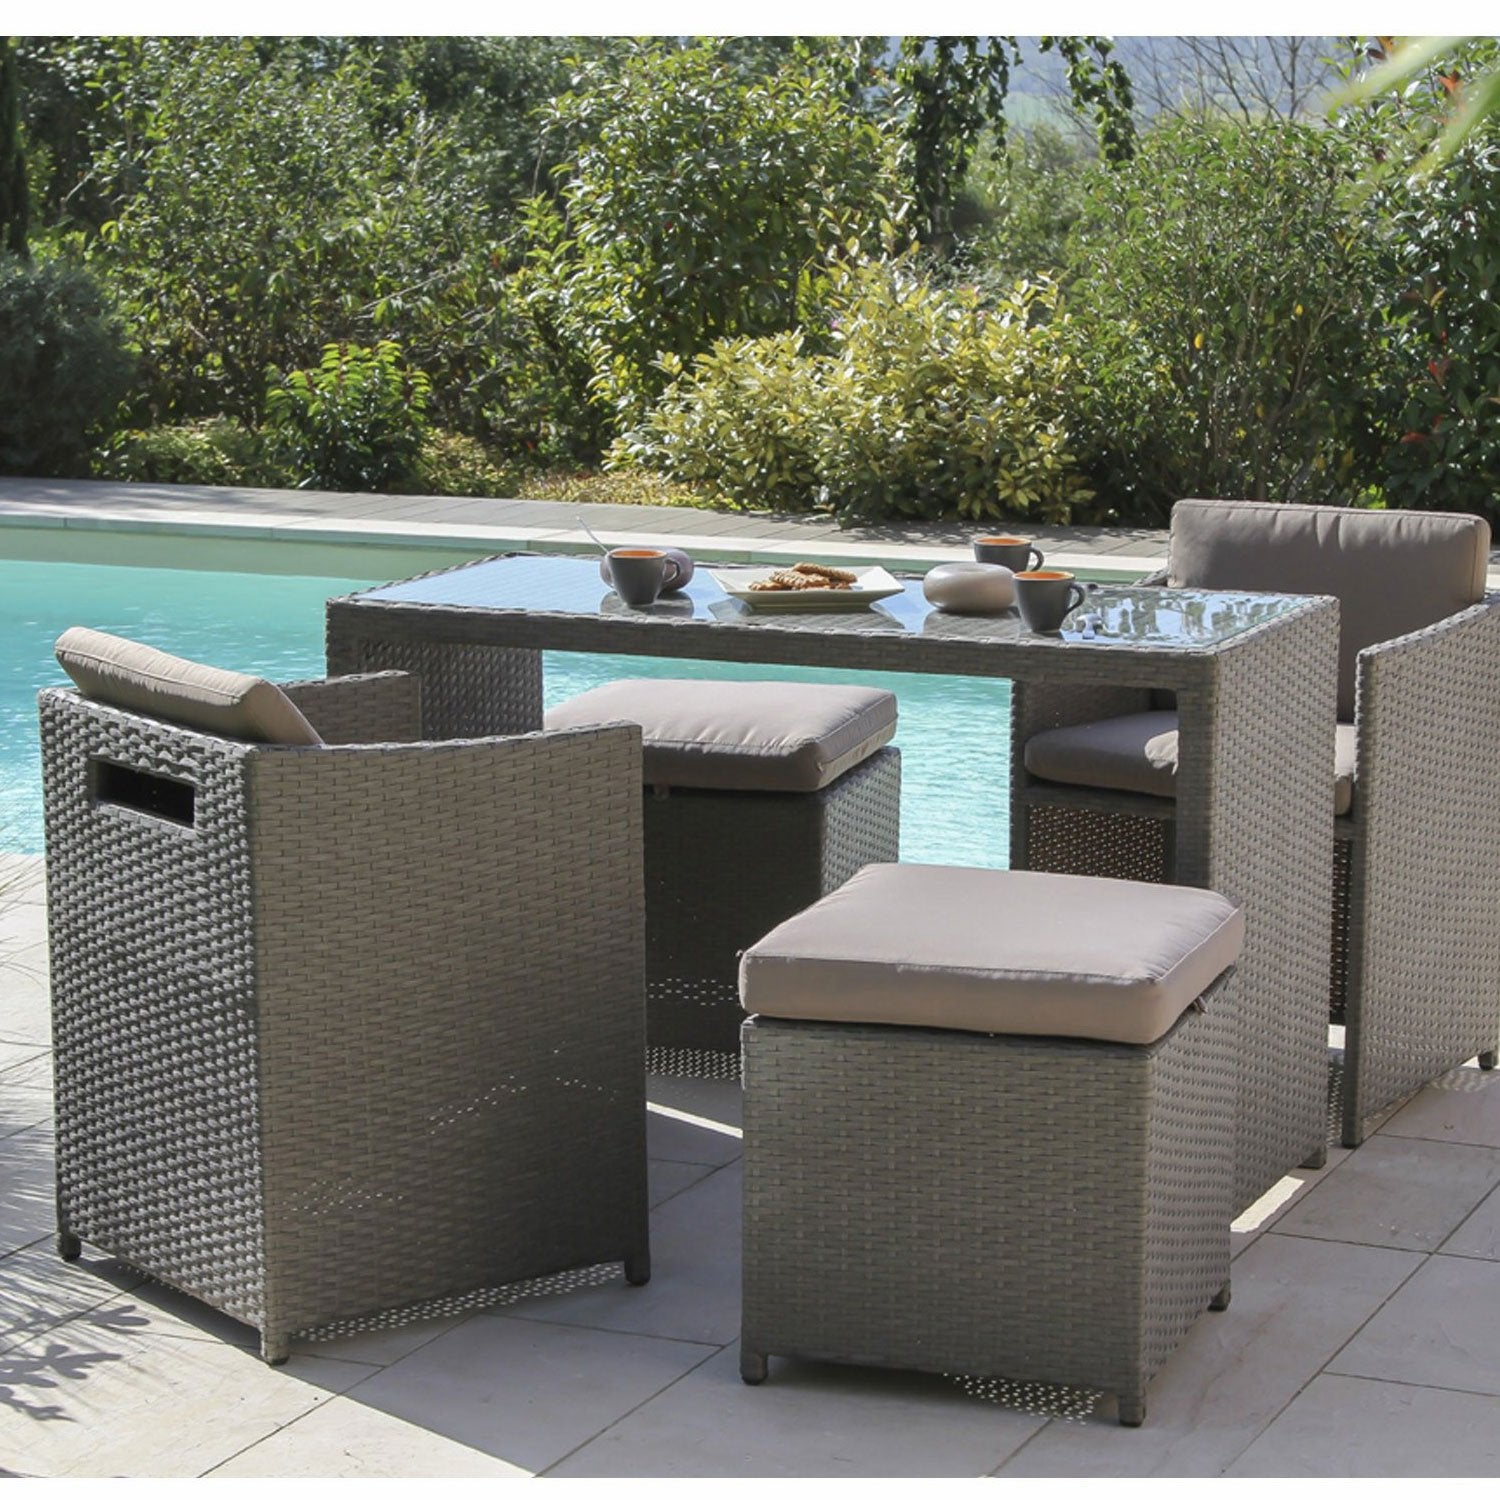 Salon de jardin foggia r sine tress e gris 1 table 2 for Mobilier de jardin resine